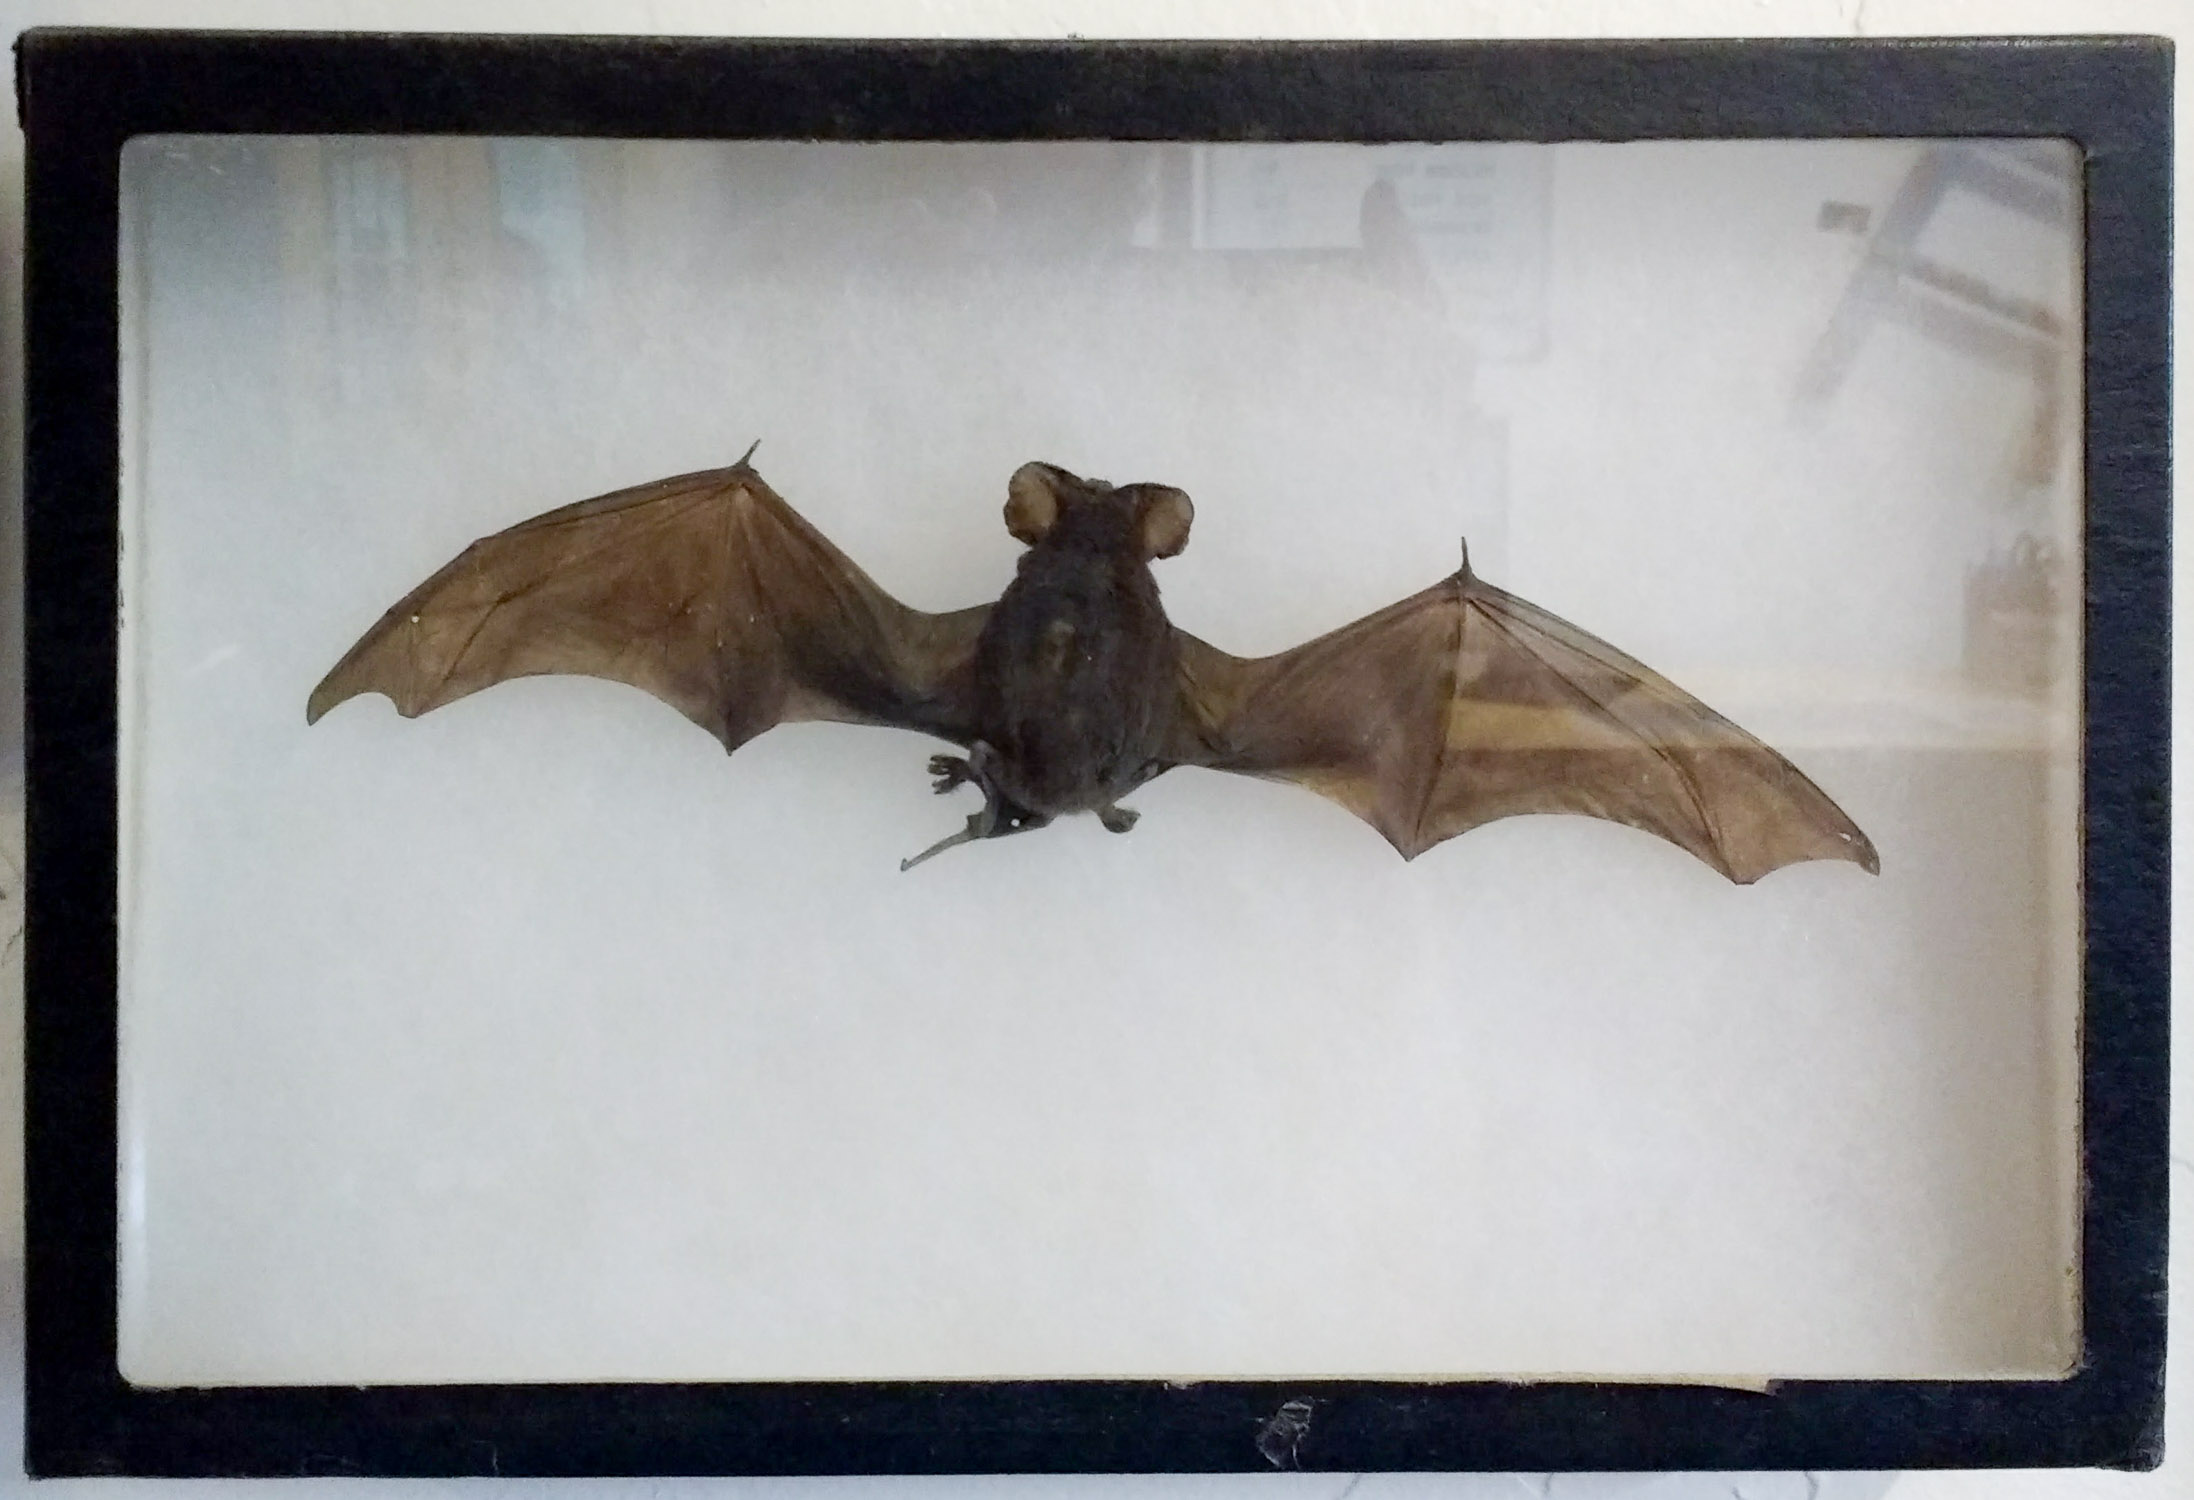 A preserved Mexican free-tailed bat at the welcome center of Valley View Hot Springs